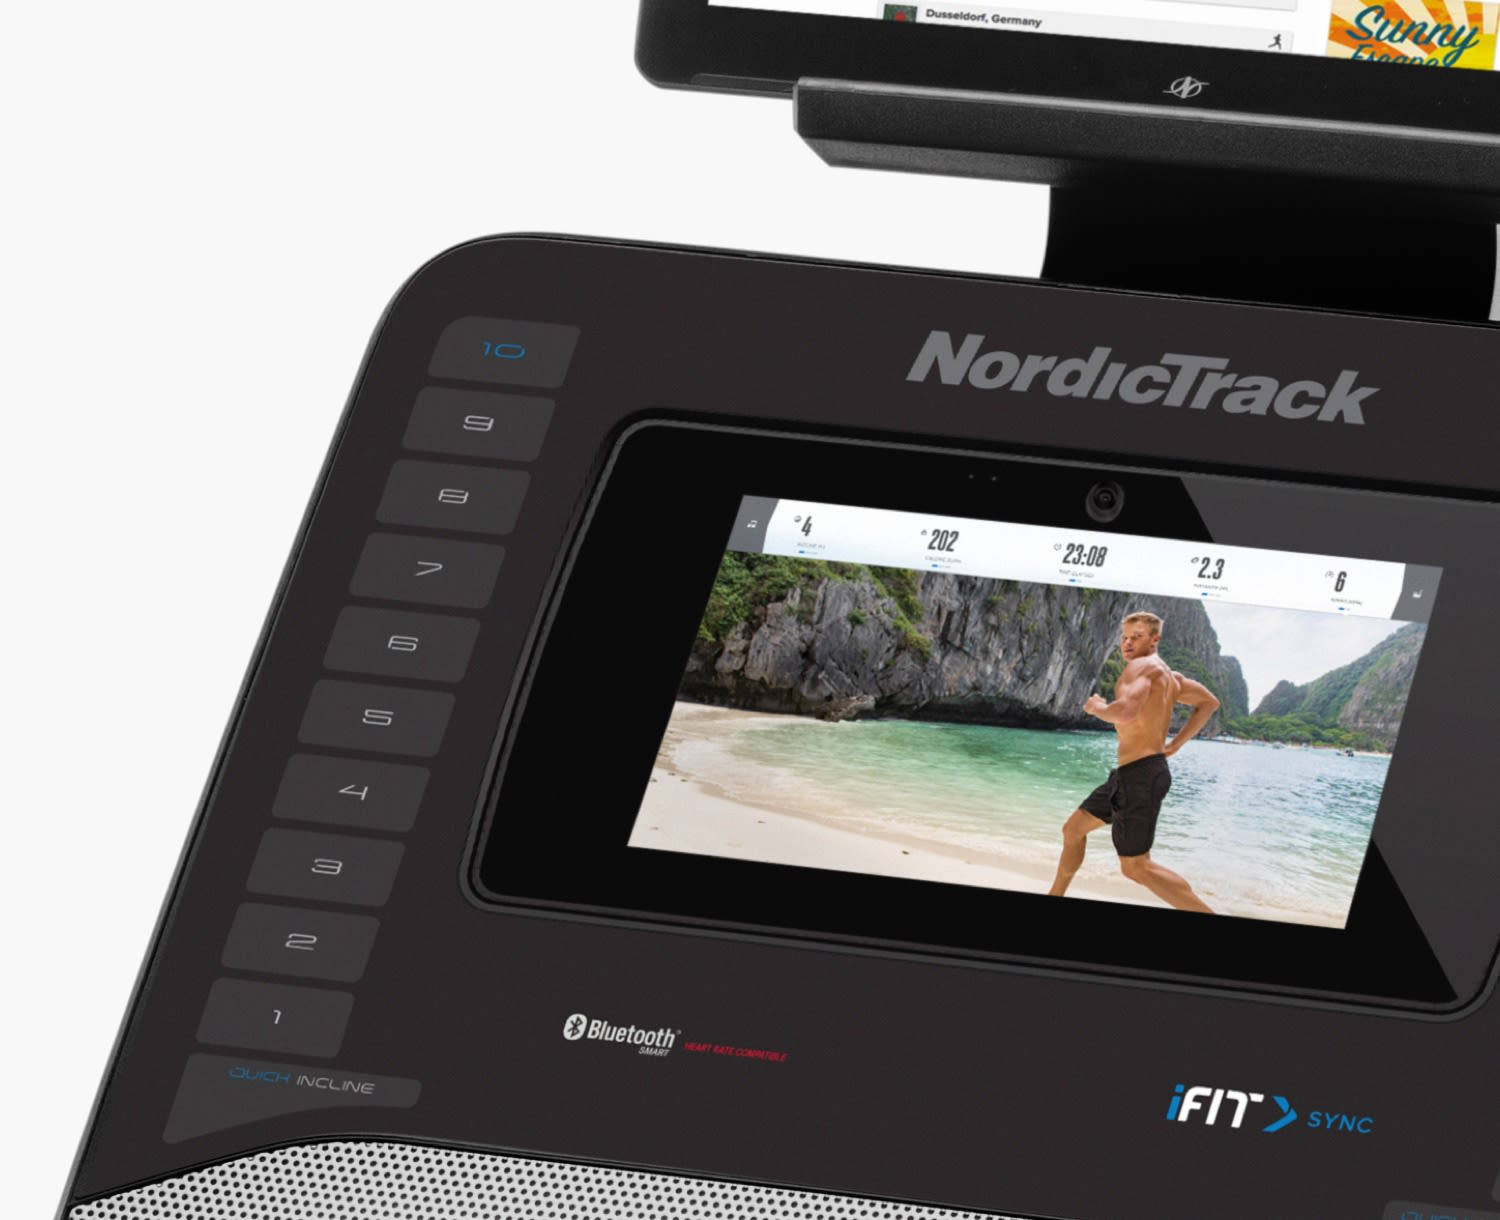 NordicTrack FreeStride Trainer FS7i Display With iFit and Google Maps